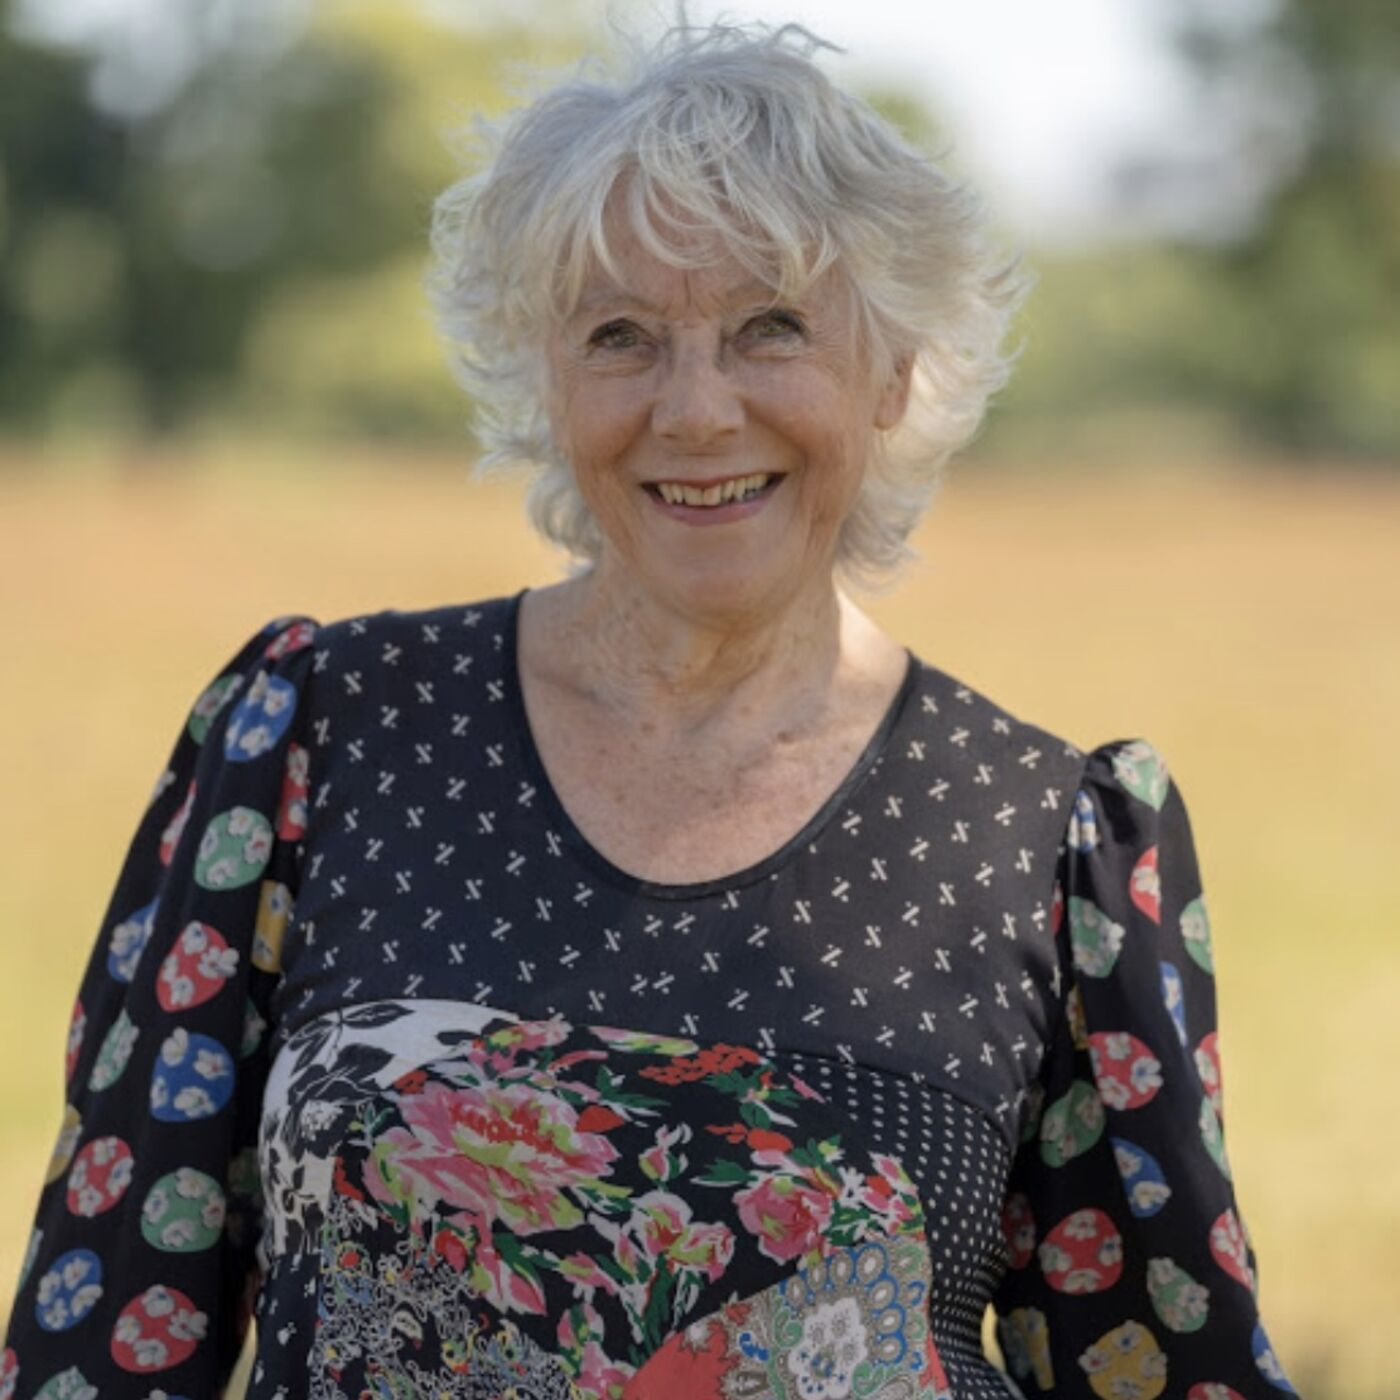 Comedy Writing Legends Prog 2 Part One - Jan Etherington on her hit sitcom Second Thoughts and working with Lynda Bellingham, James Bolam and others